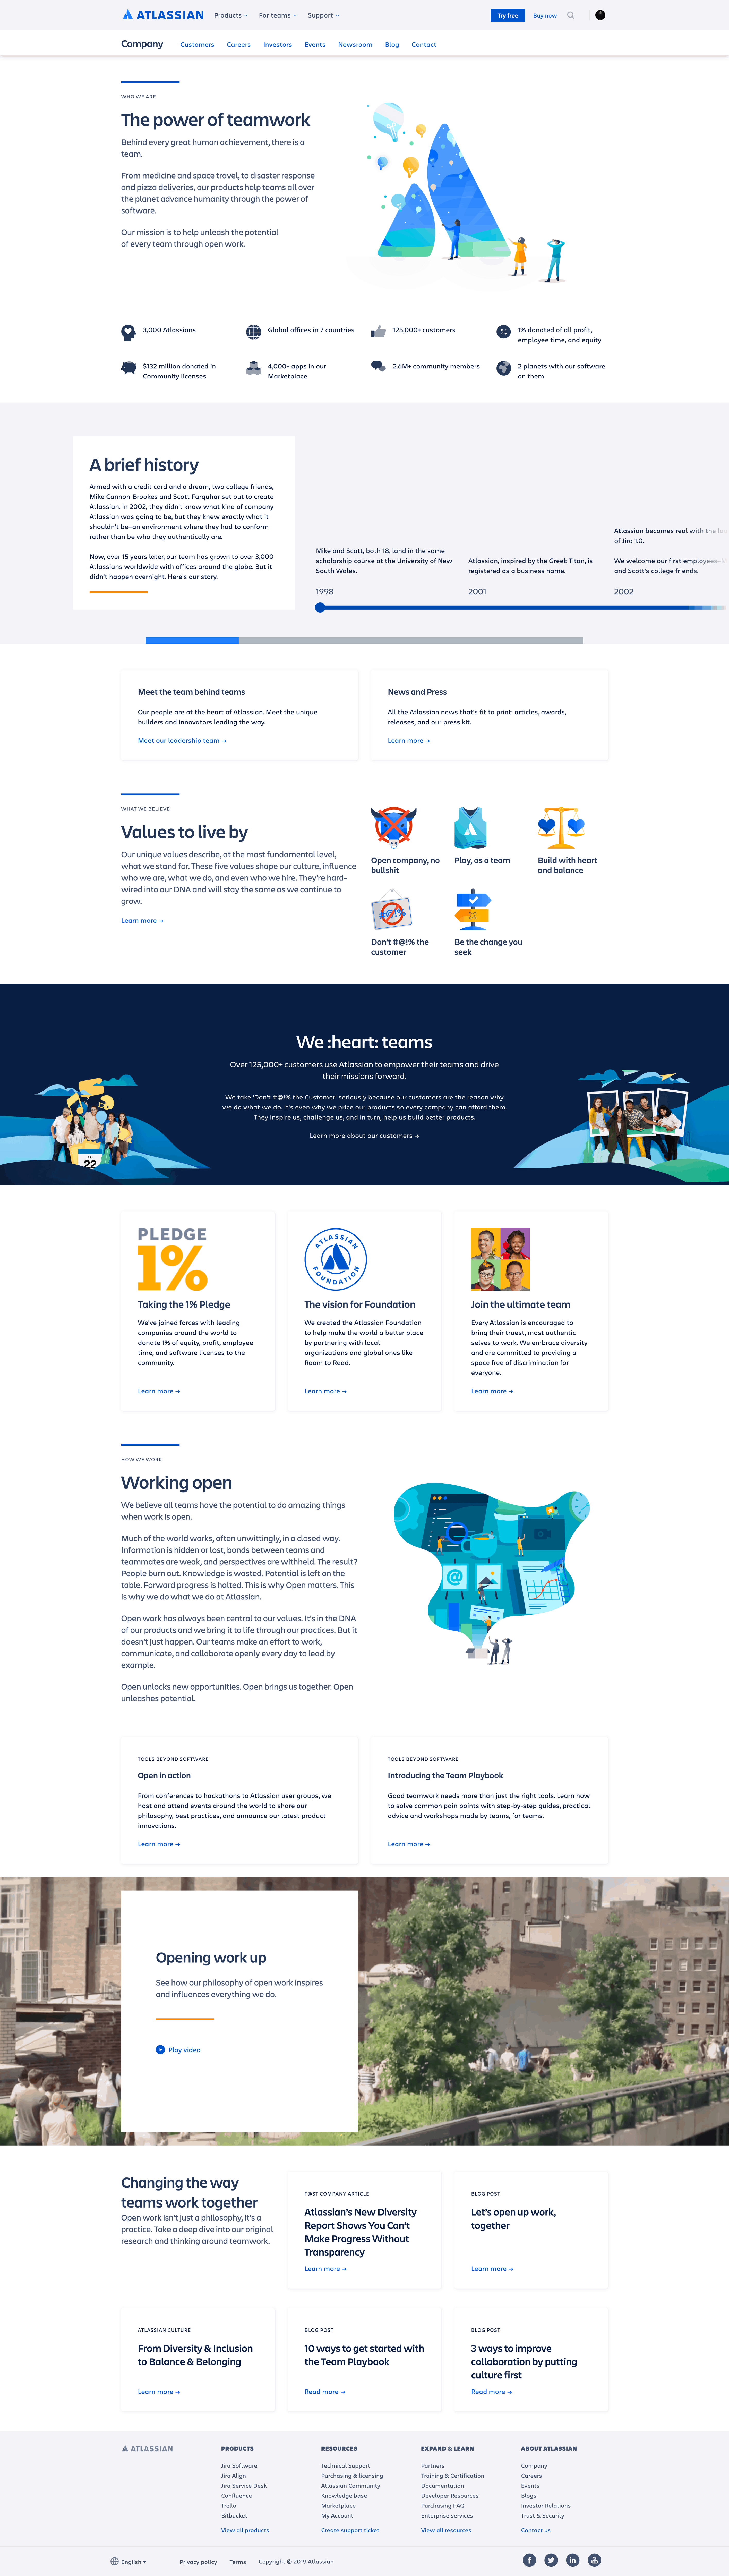 About Us Page by Atlassian